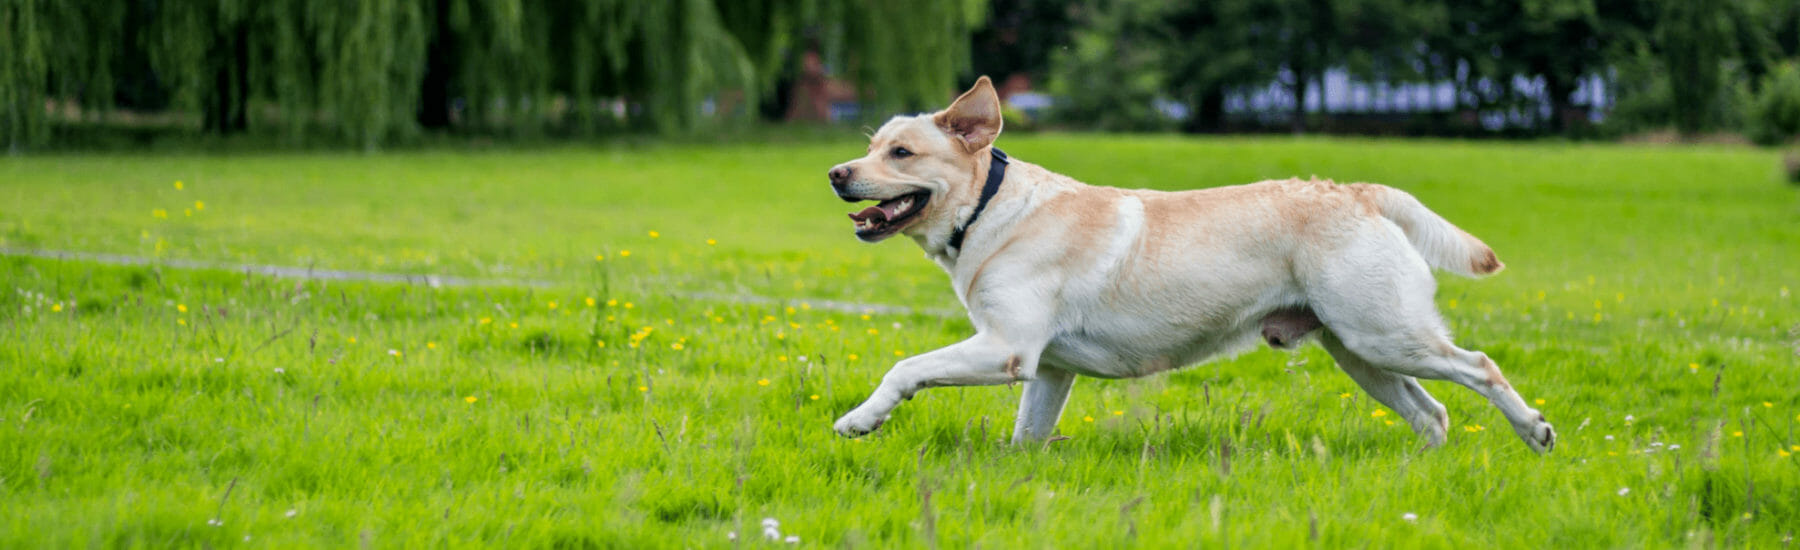 White dog running through bright green grass